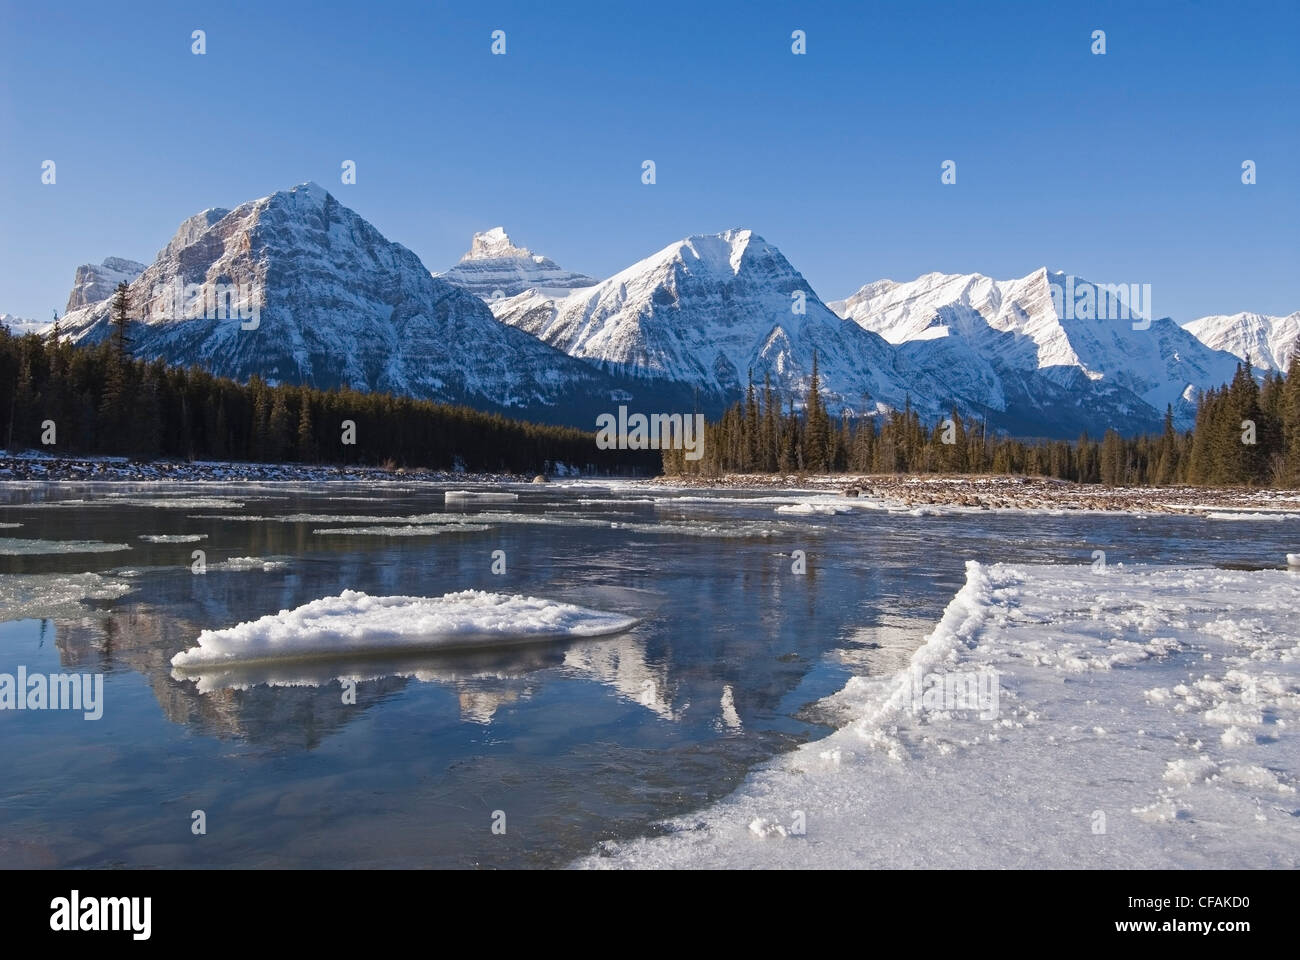 On an early winter day the Athabasca River carries ice past the Rocky Mountains, near Jasper, Alberta, Canada. - Stock Image